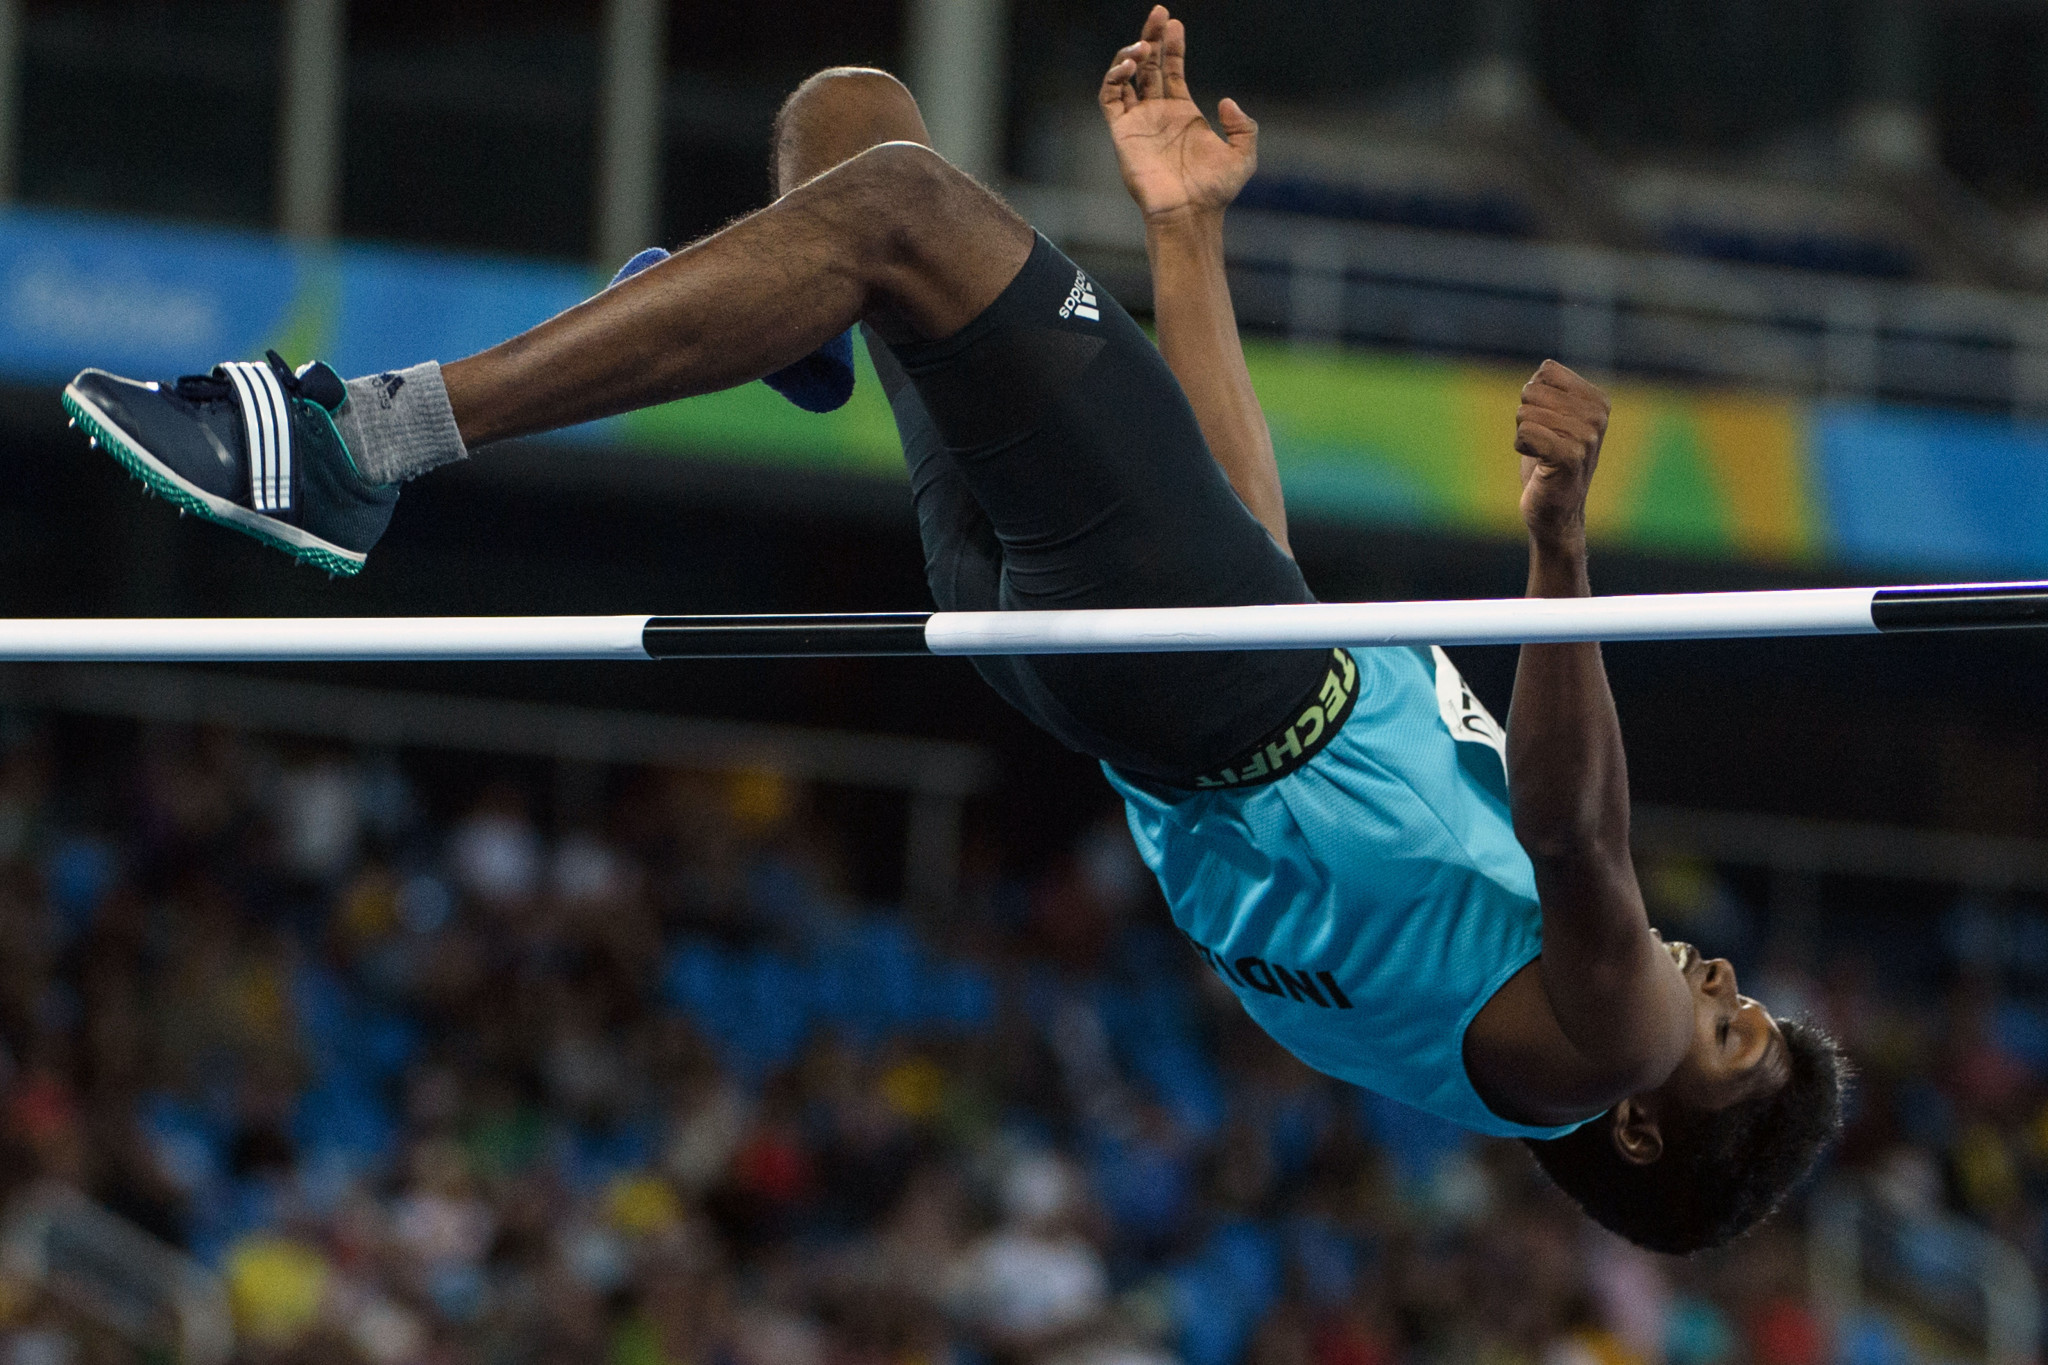 India's Mariyappan Thangavelu won the men's high jump T42 Paralympic Games gold medal at Rio 2016 ©Getty Images